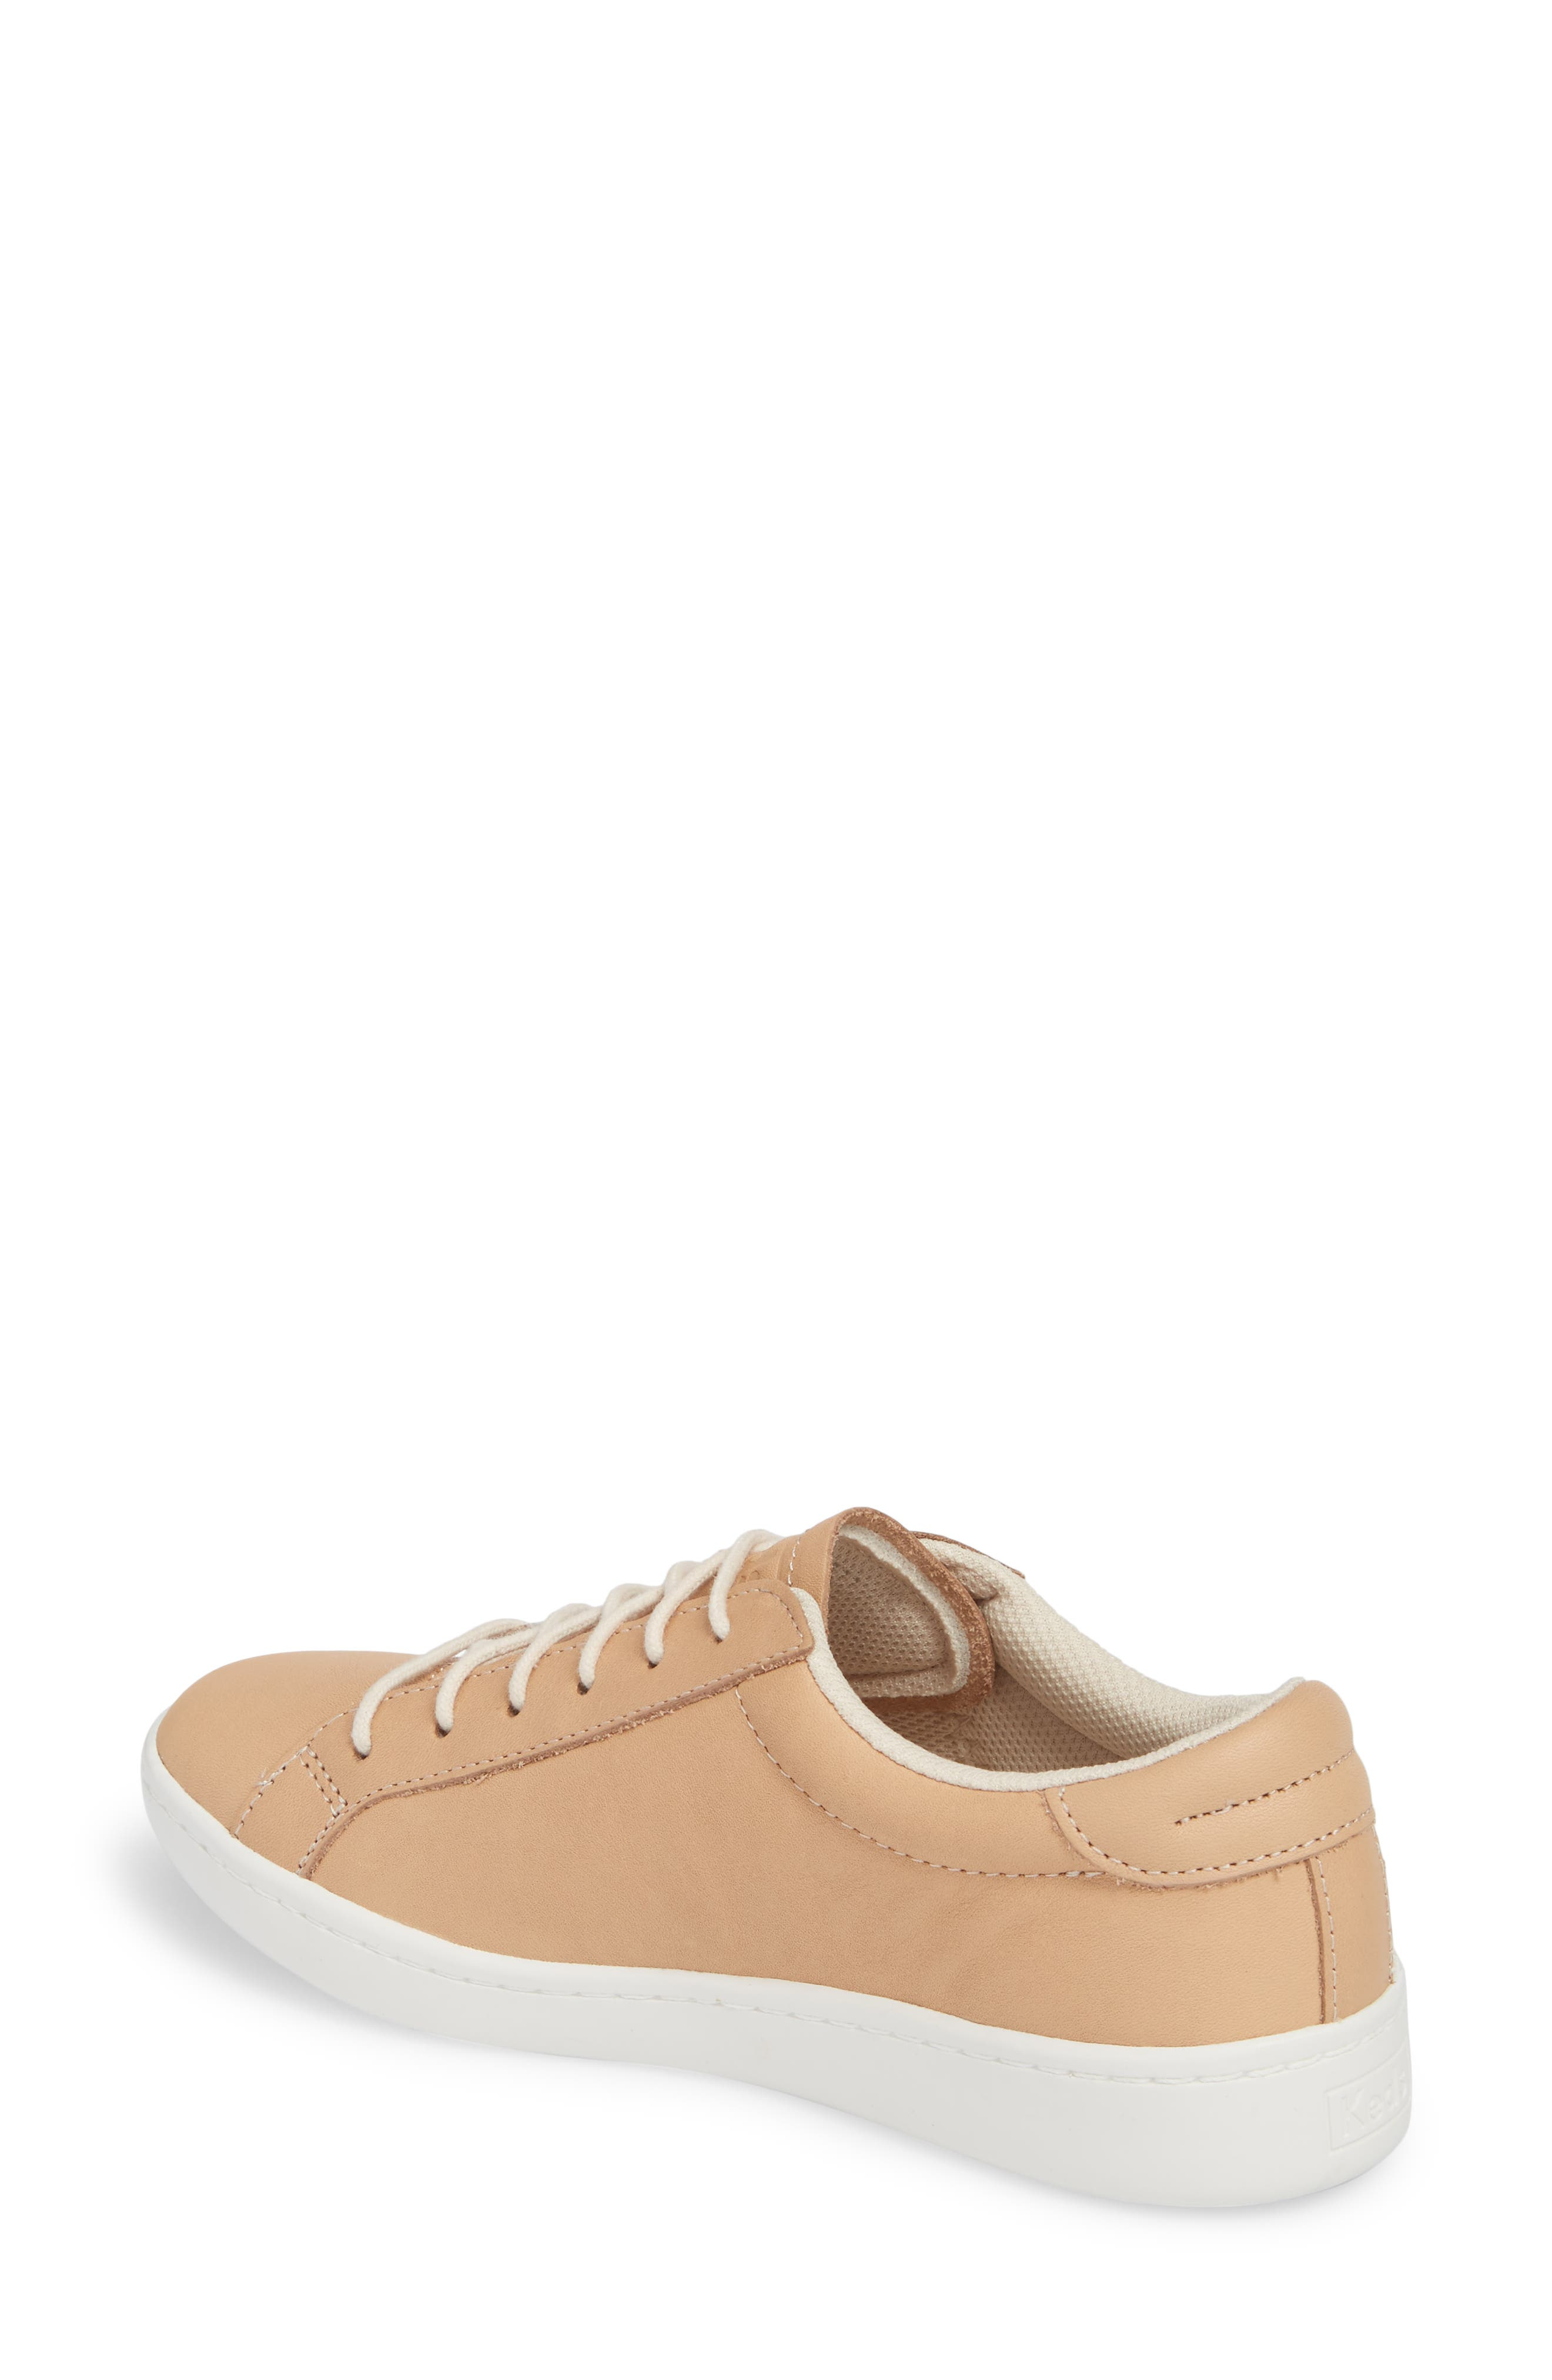 Ace Leather Sneaker,                             Alternate thumbnail 2, color,                             Natural